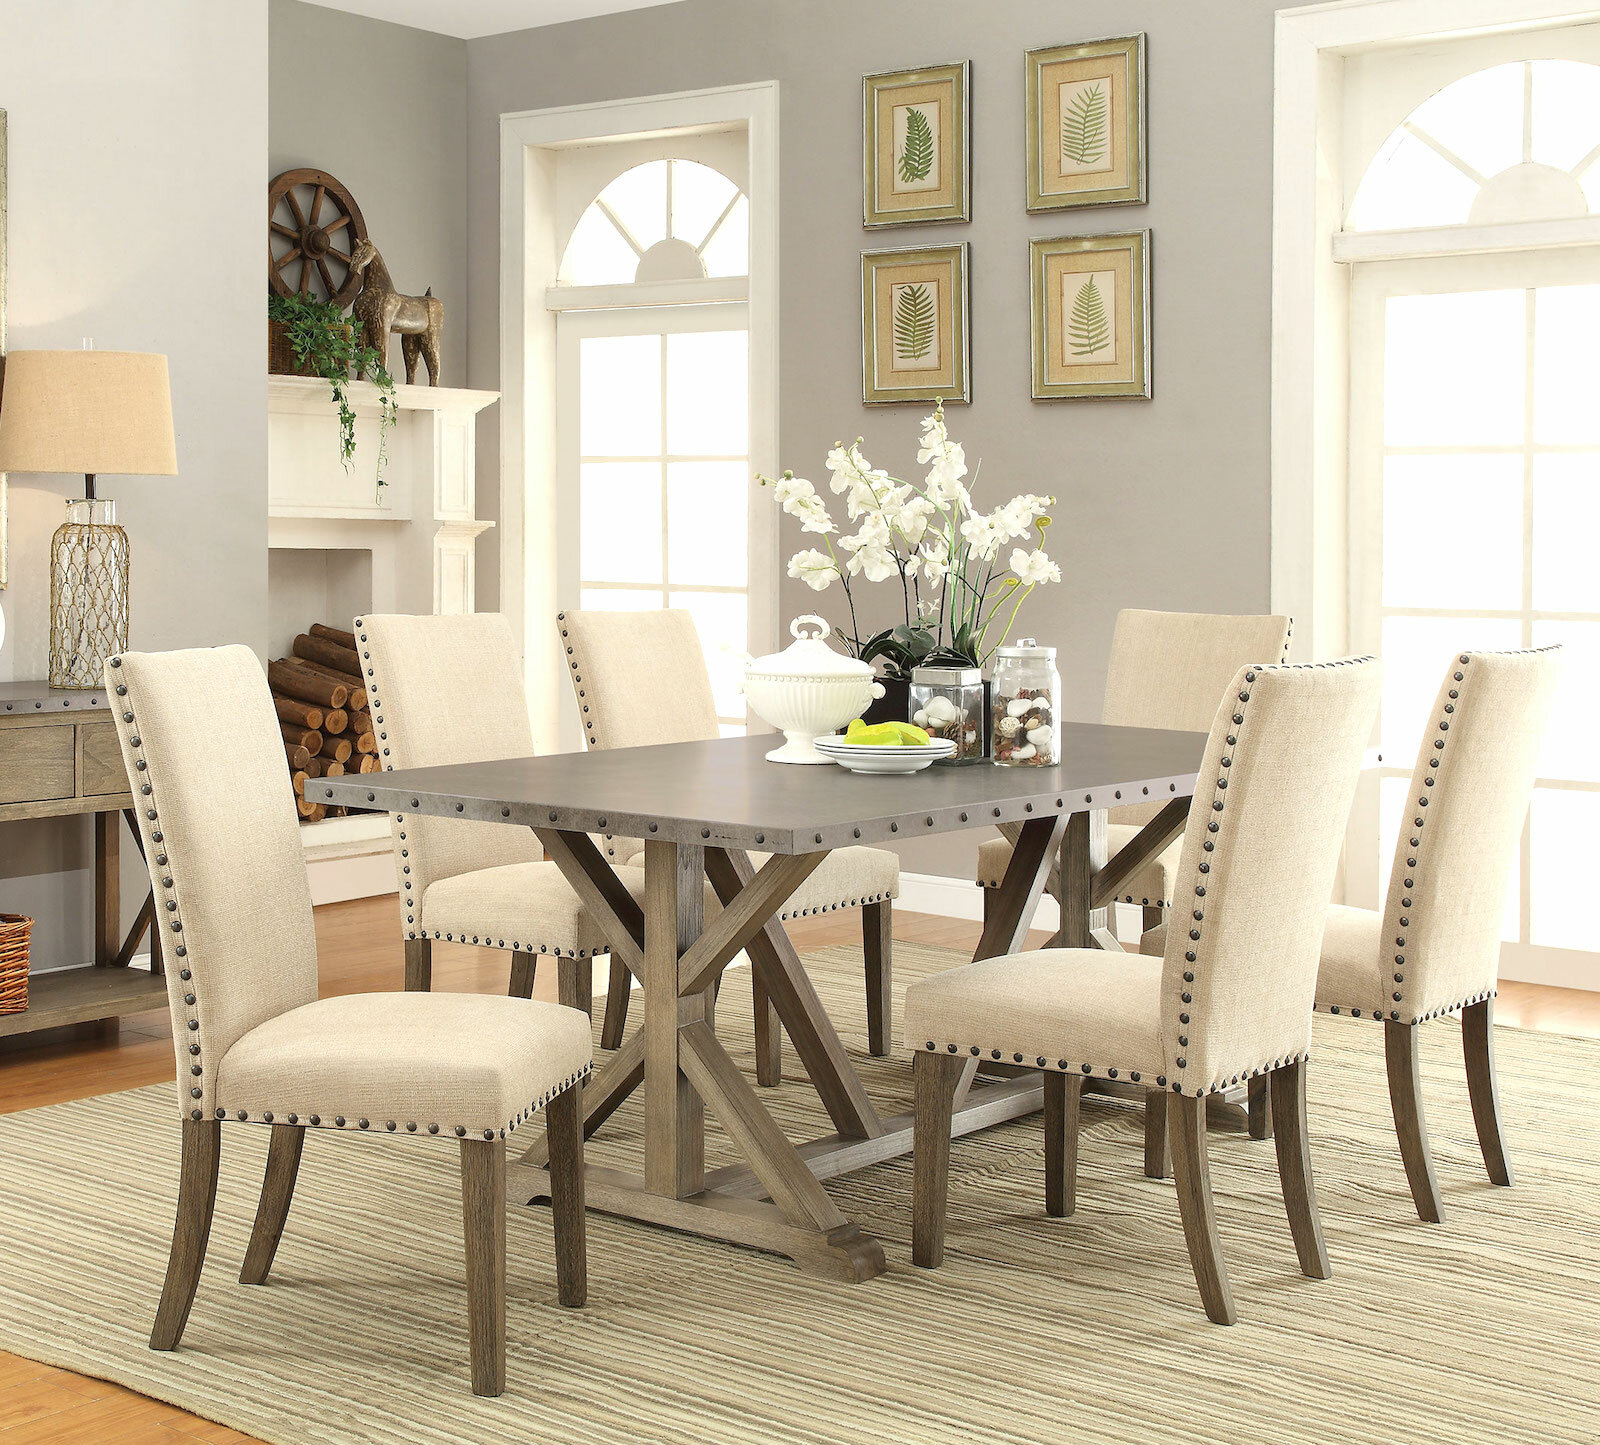 Infini Furnishings Athens Piece Dining Set Reviews Wayfair - Best place to buy dining room table